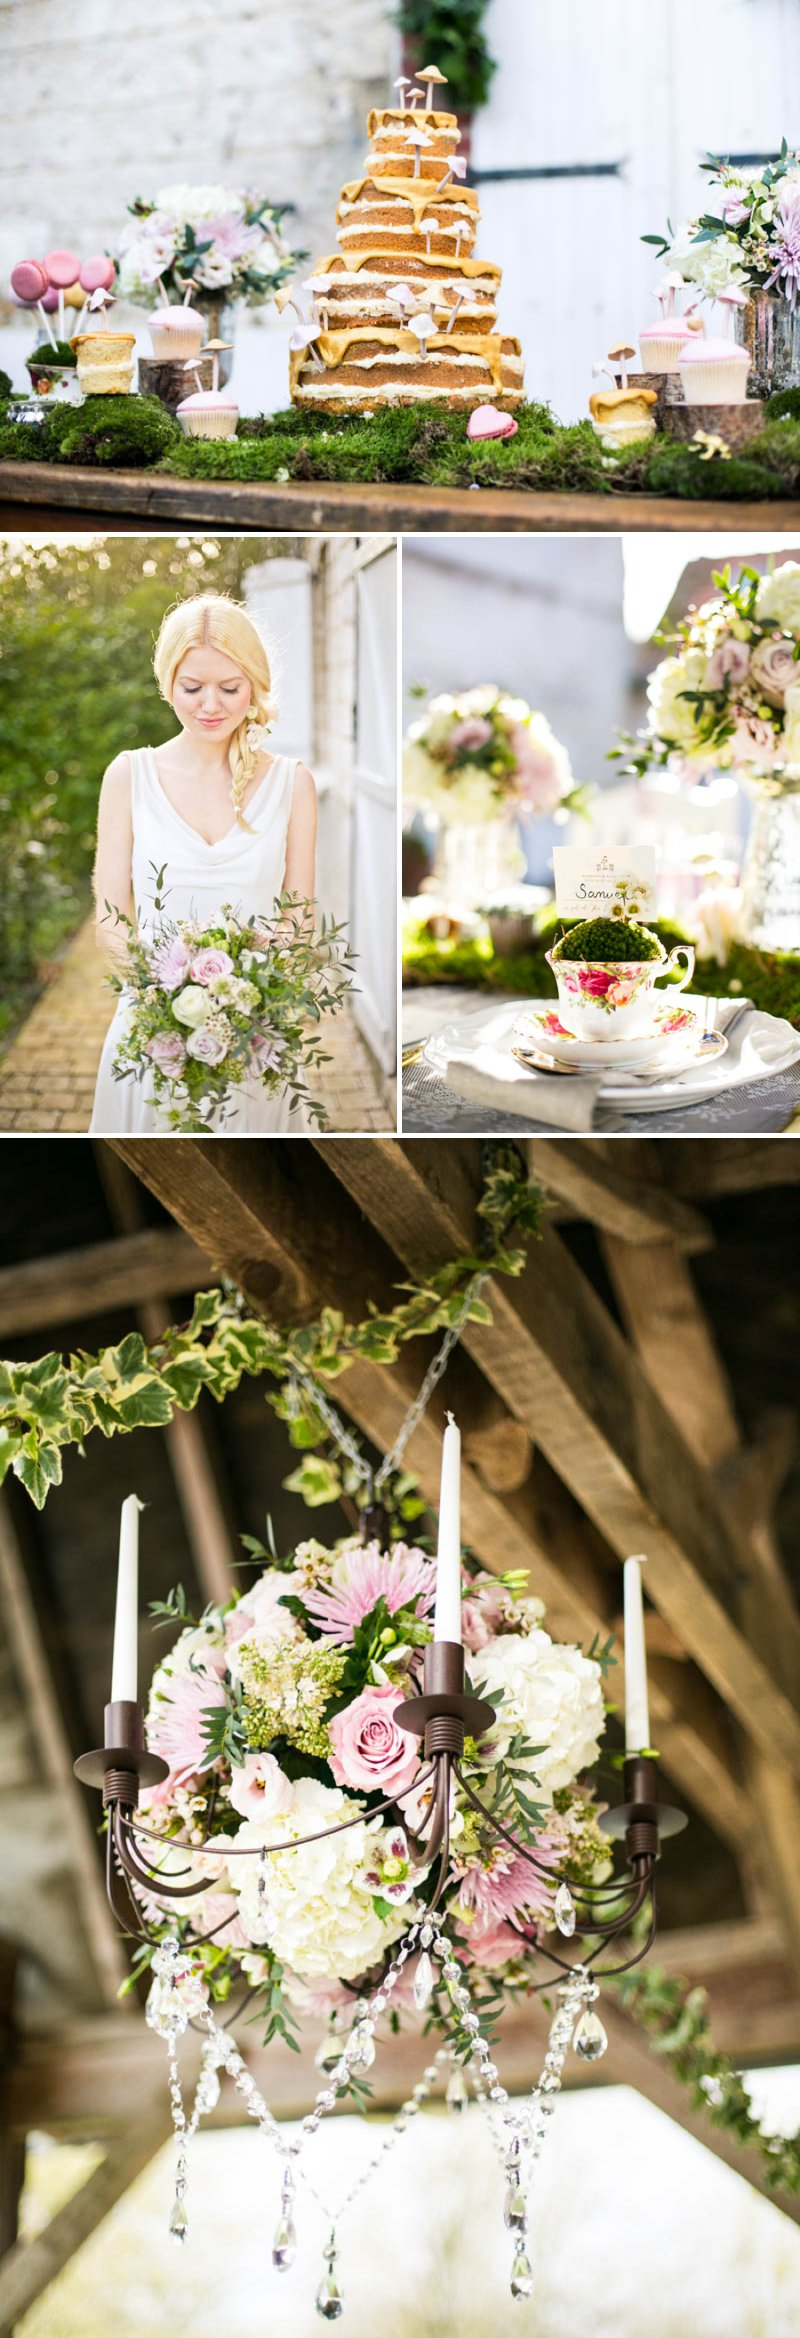 A Romantic And Whimsical Bridal Inspiration Shoot With Johanna Hehir Gowns And Victoria Millesime Accessories With Stationery By Artcadia And Flowers By Boutique Blooms Images From Anneli Marinovich 1